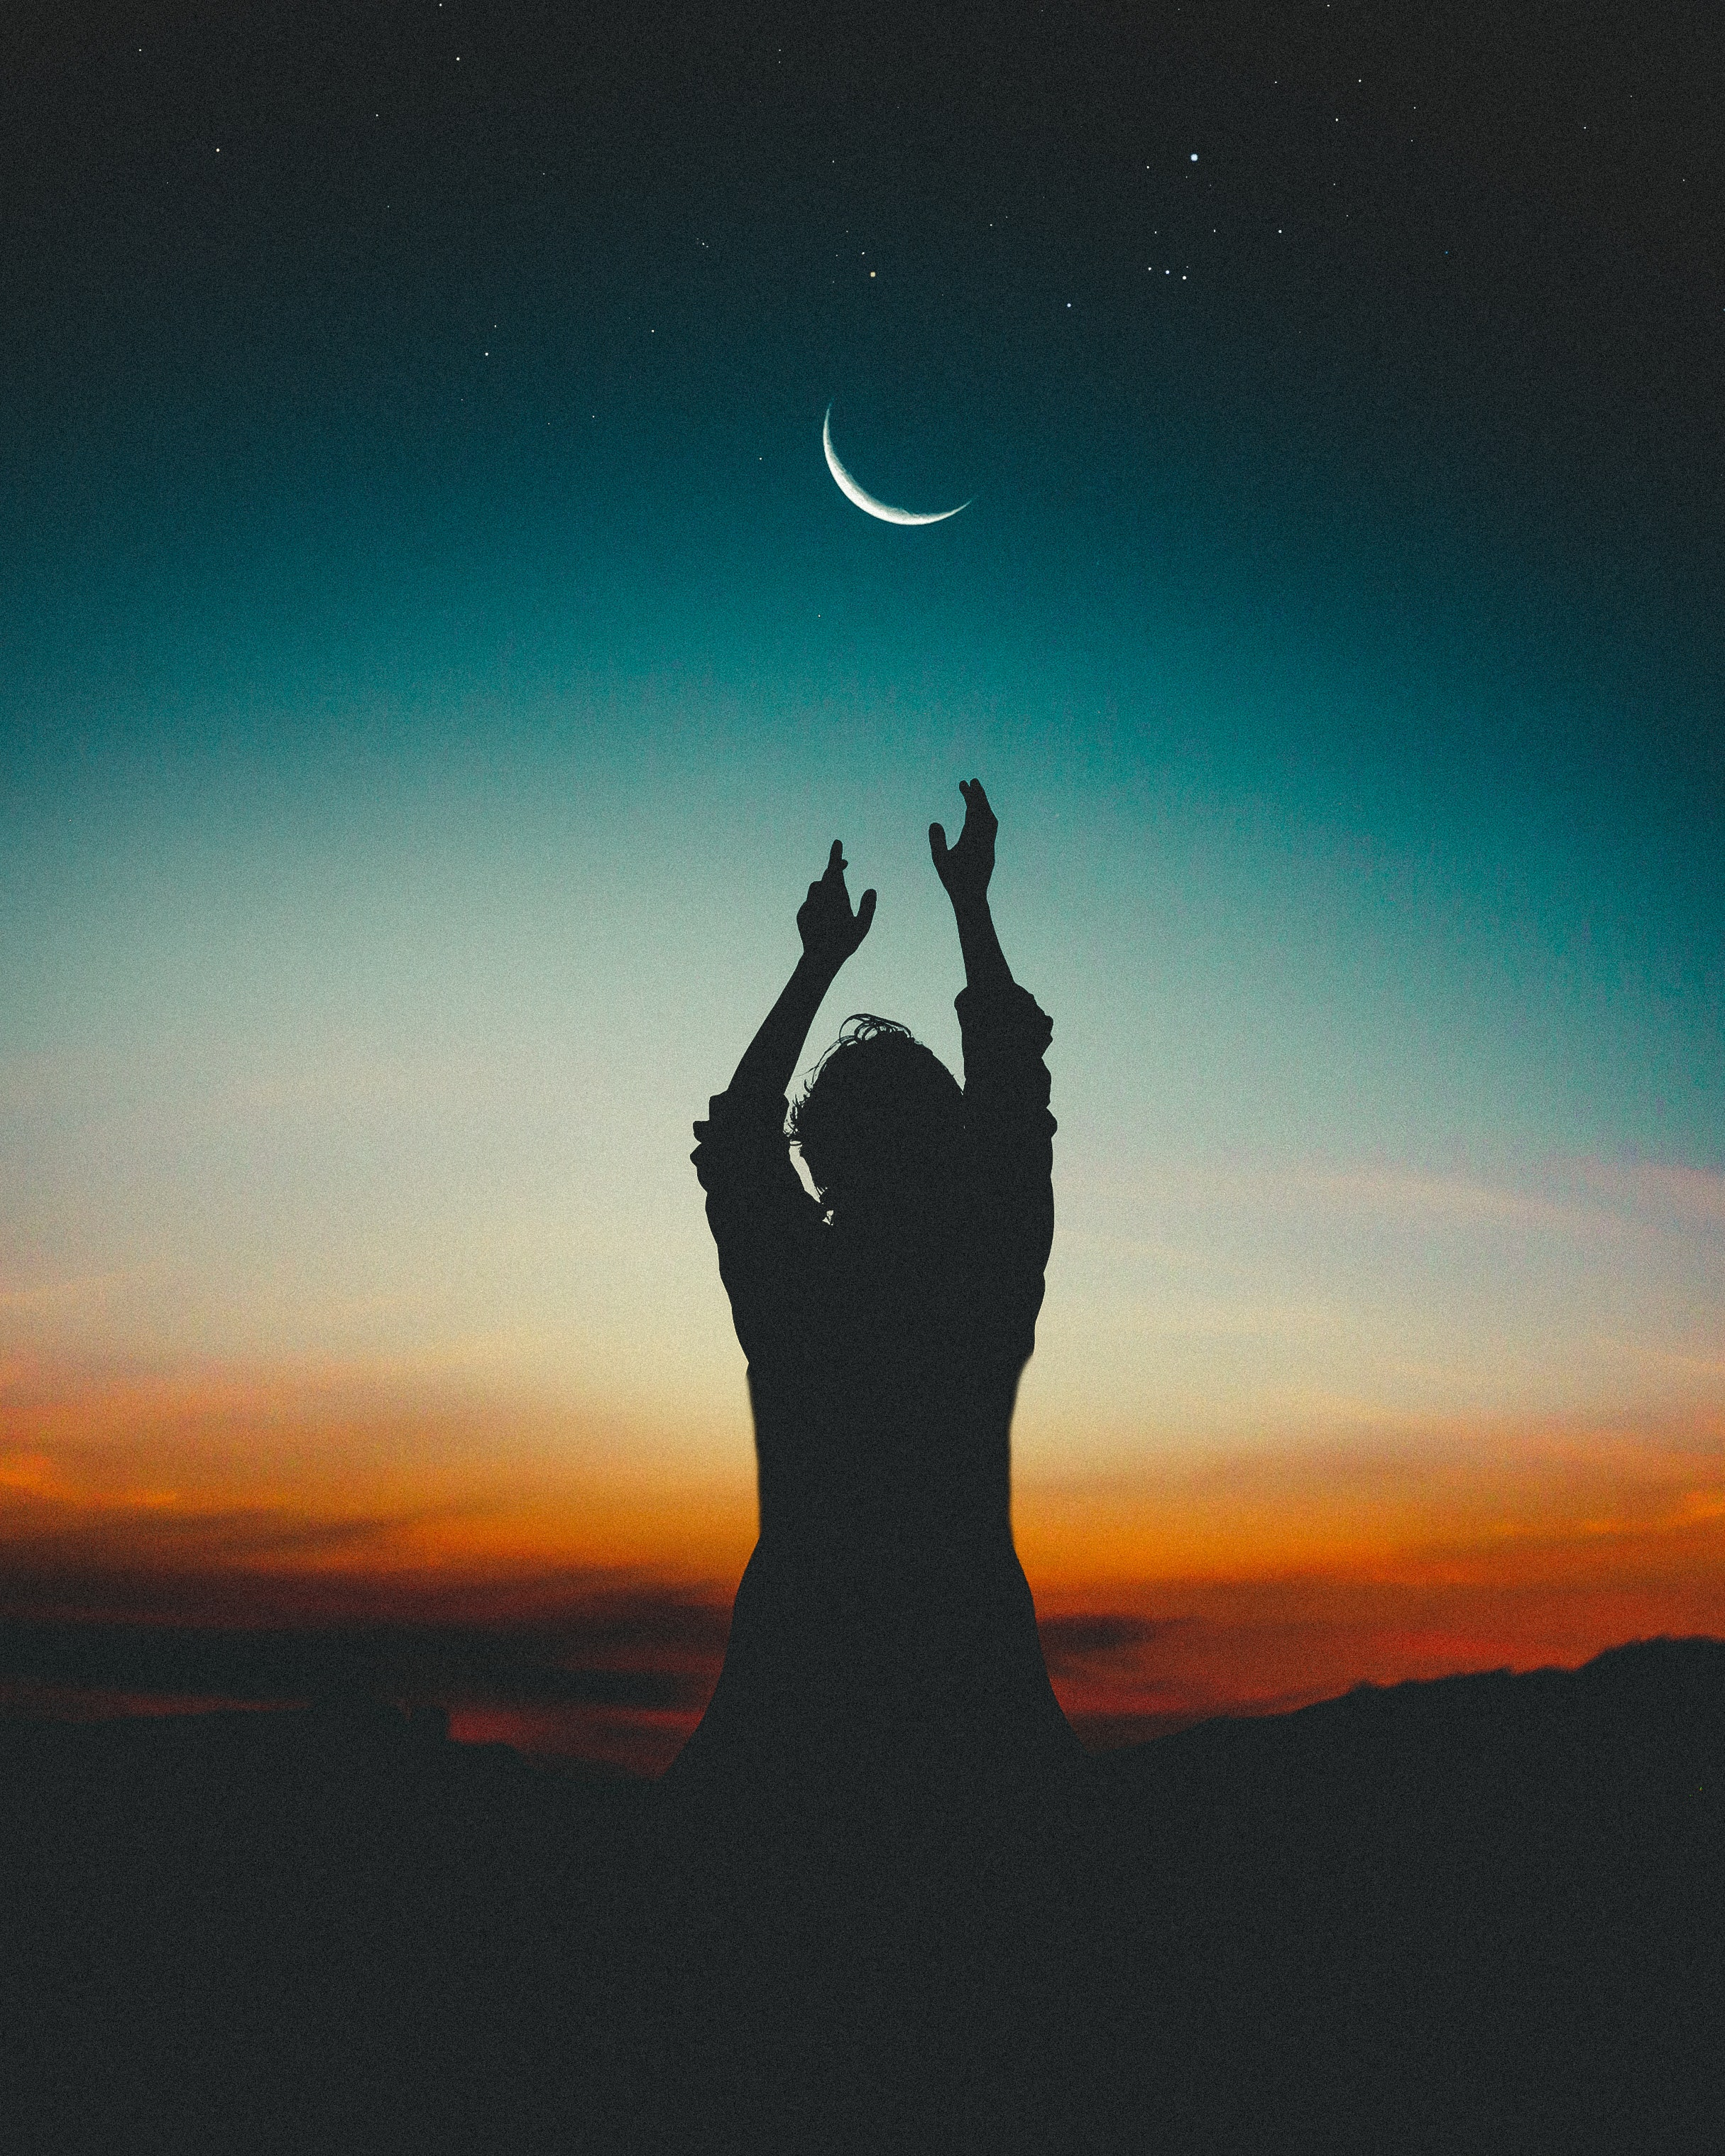 154689 free wallpaper 320x480 for phone, download images Sky, Night, Moon, Dark, Silhouette, Human, Person 320x480 for mobile